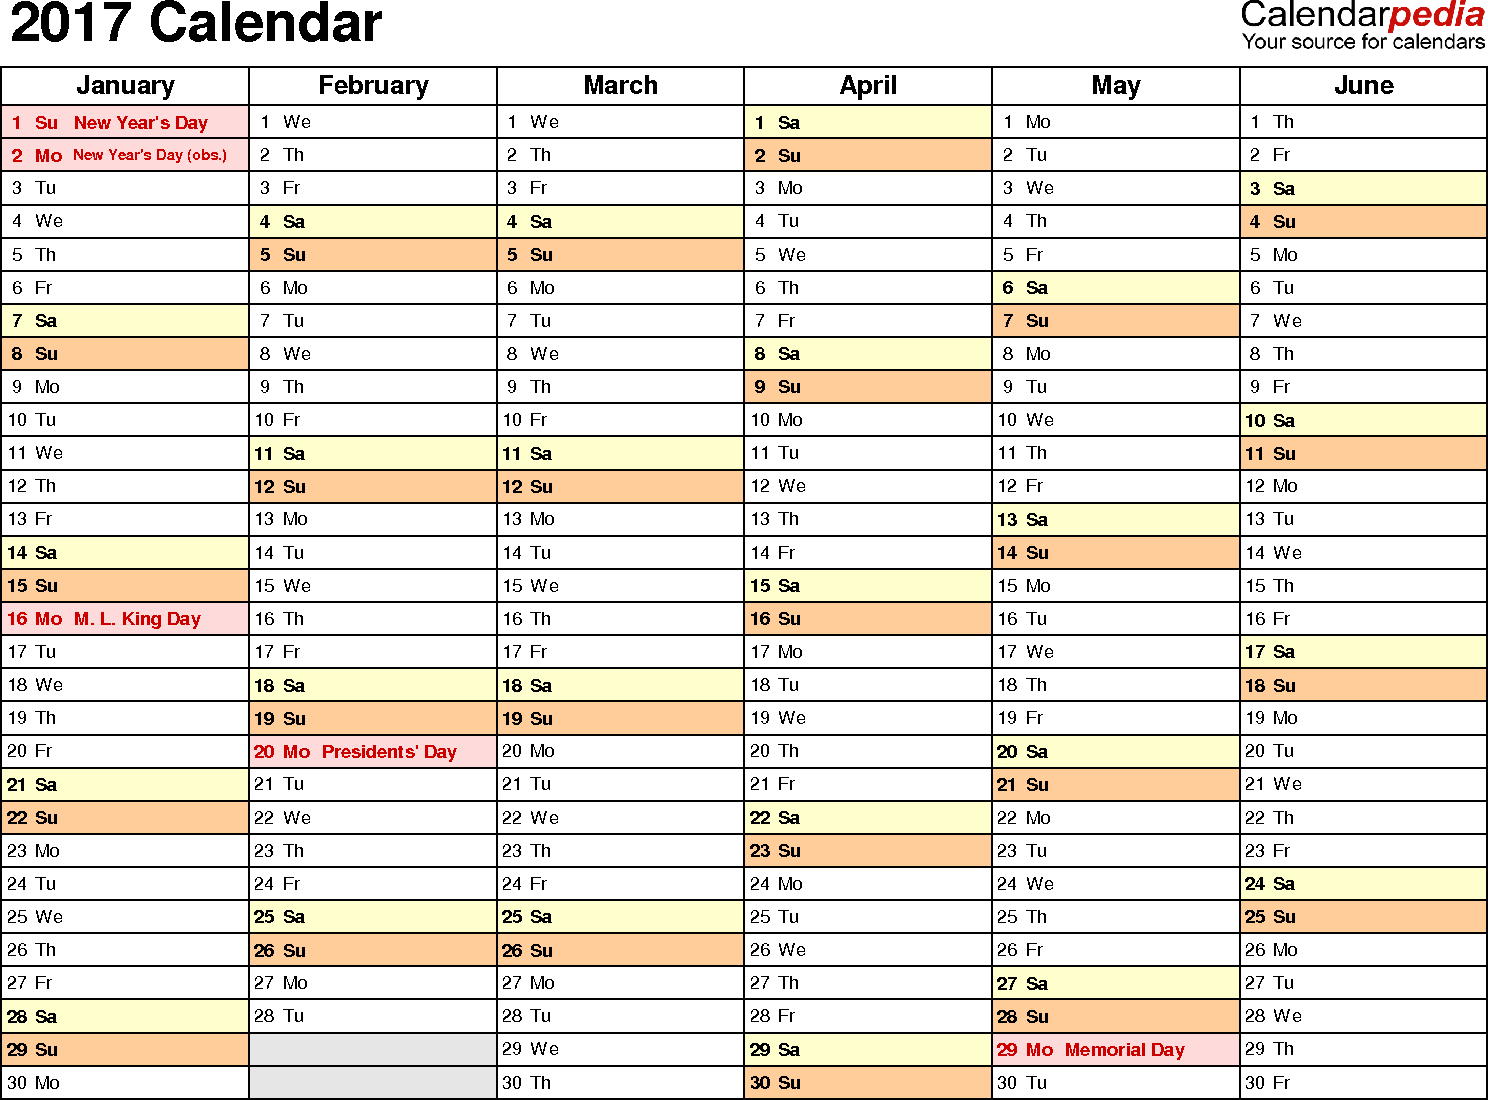 Ediblewildsus  Prepossessing  Calendar  Download  Free Printable Excel Templates Xls With Entrancing Template   Calendar For Excel Months Horizontally  Pages Landscape Orientation With Comely How To Get Microsoft Excel On Mac Also If Commands In Excel In Addition Excel Mod Formula And Inverse Function Excel As Well As Remove Password Protection Excel Additionally Convert In Excel From Calendarpediacom With Ediblewildsus  Entrancing  Calendar  Download  Free Printable Excel Templates Xls With Comely Template   Calendar For Excel Months Horizontally  Pages Landscape Orientation And Prepossessing How To Get Microsoft Excel On Mac Also If Commands In Excel In Addition Excel Mod Formula From Calendarpediacom